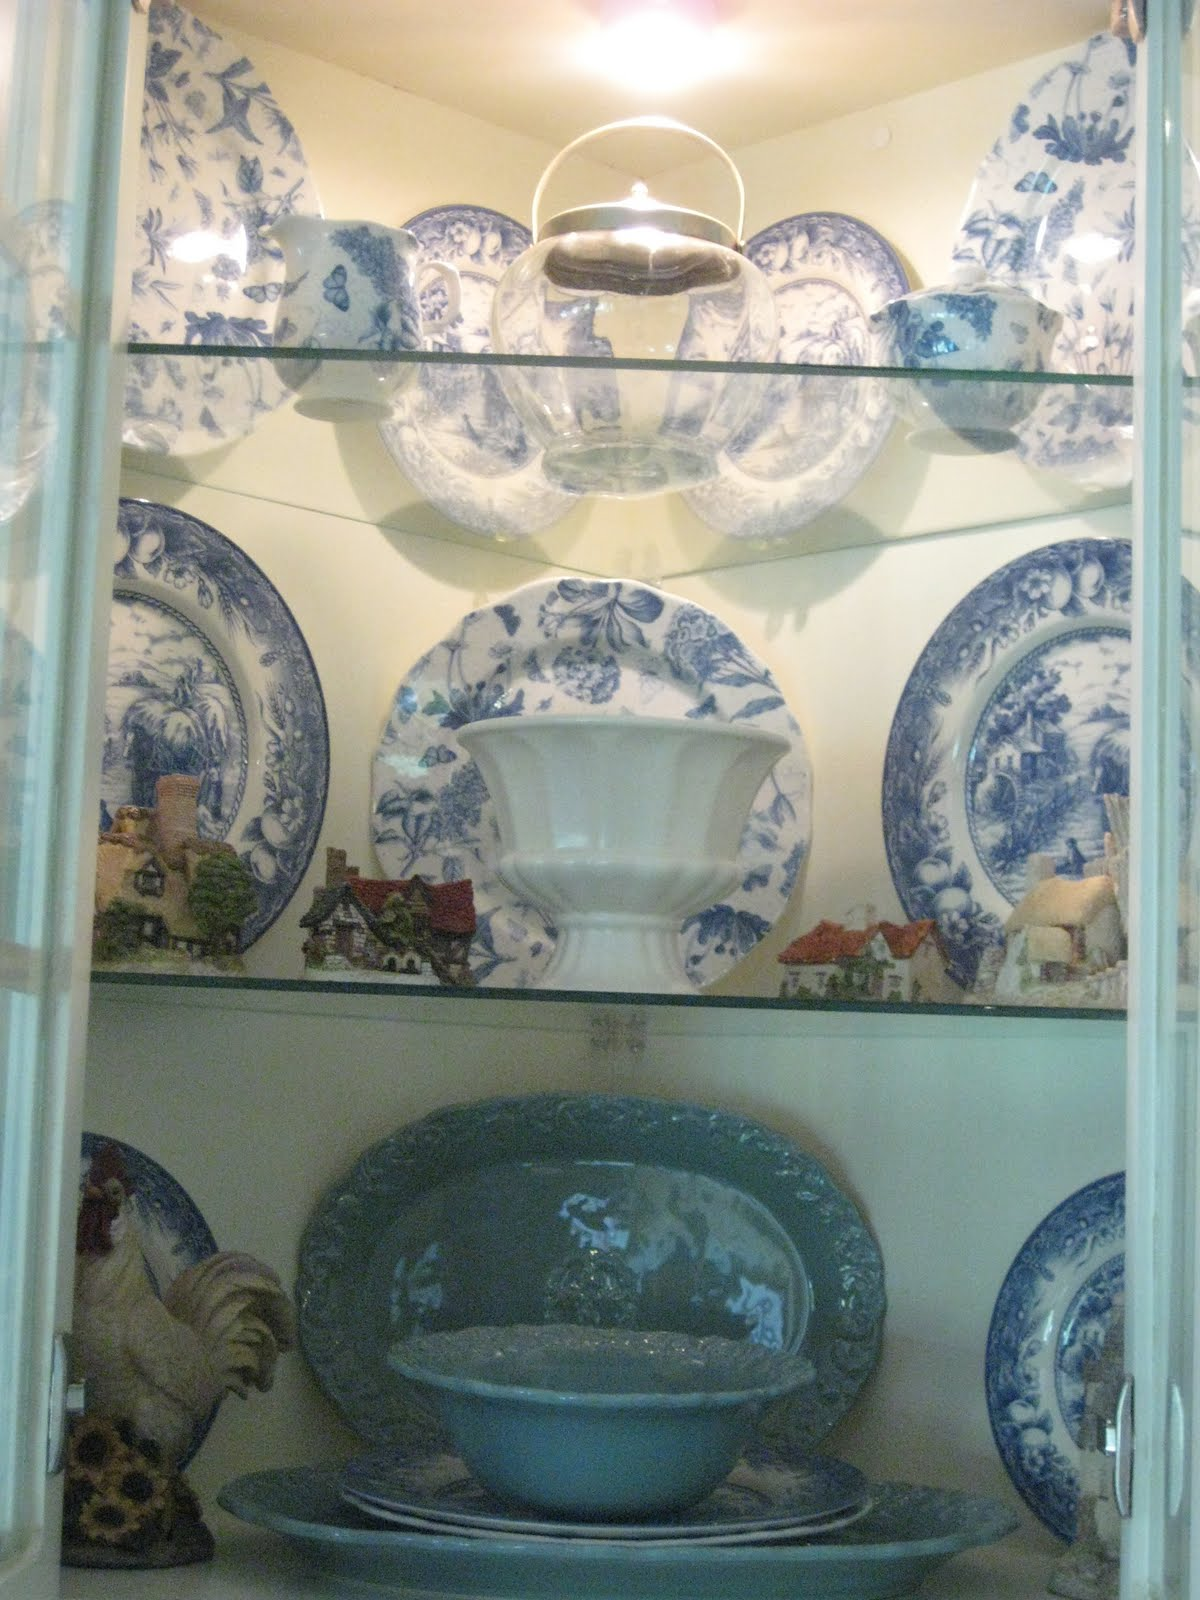 So although I originally began with a blue and white scheme, I forsee